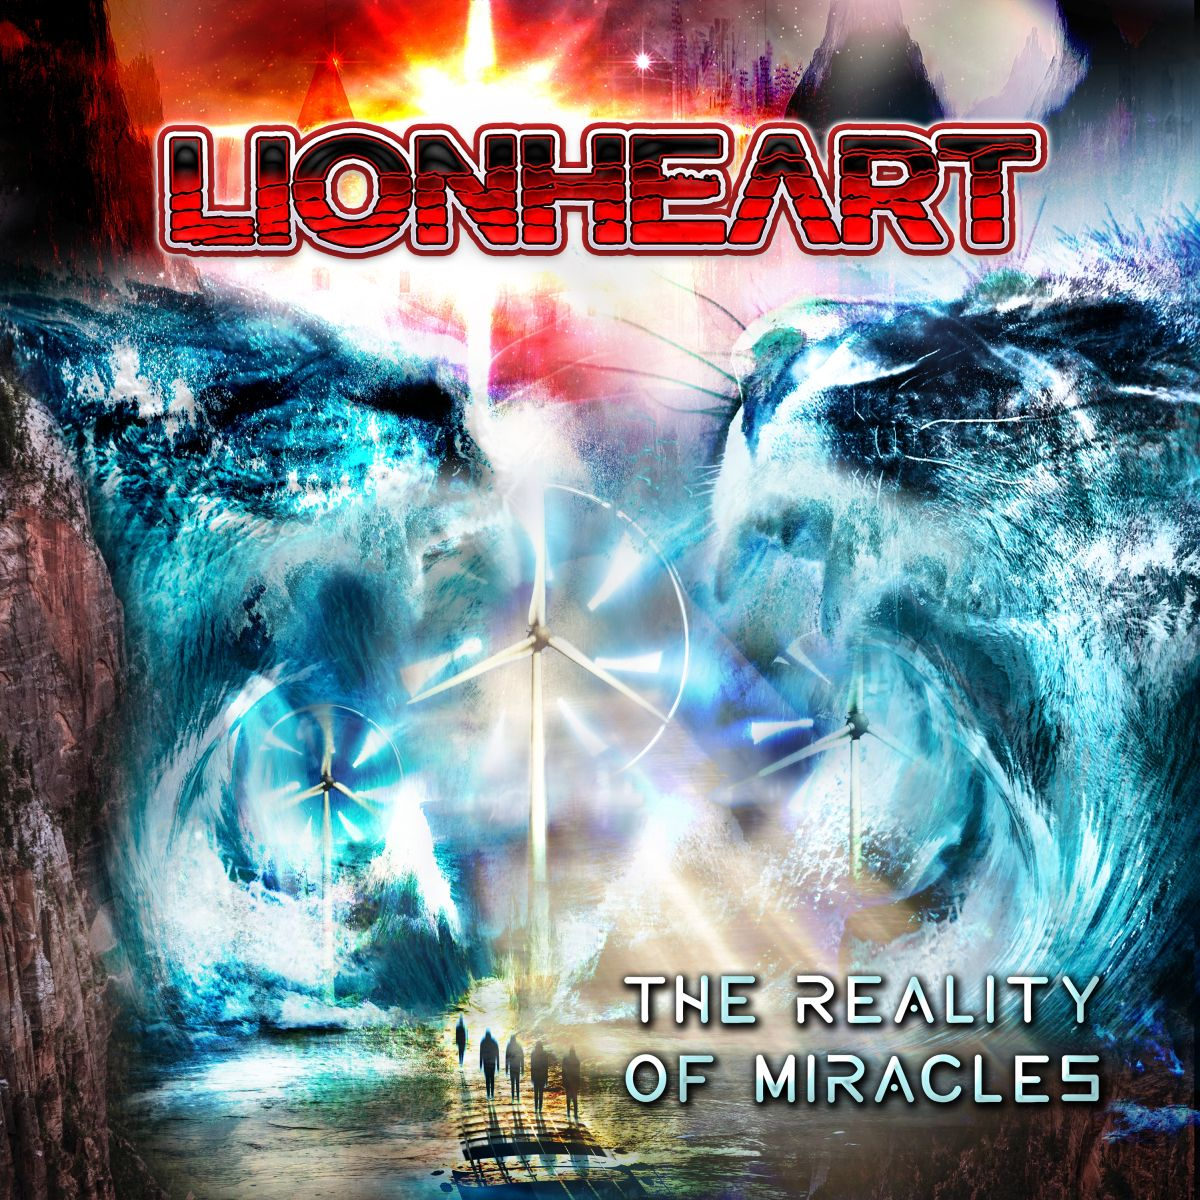 Lionheart - The reality of miracles - Artwork (1)